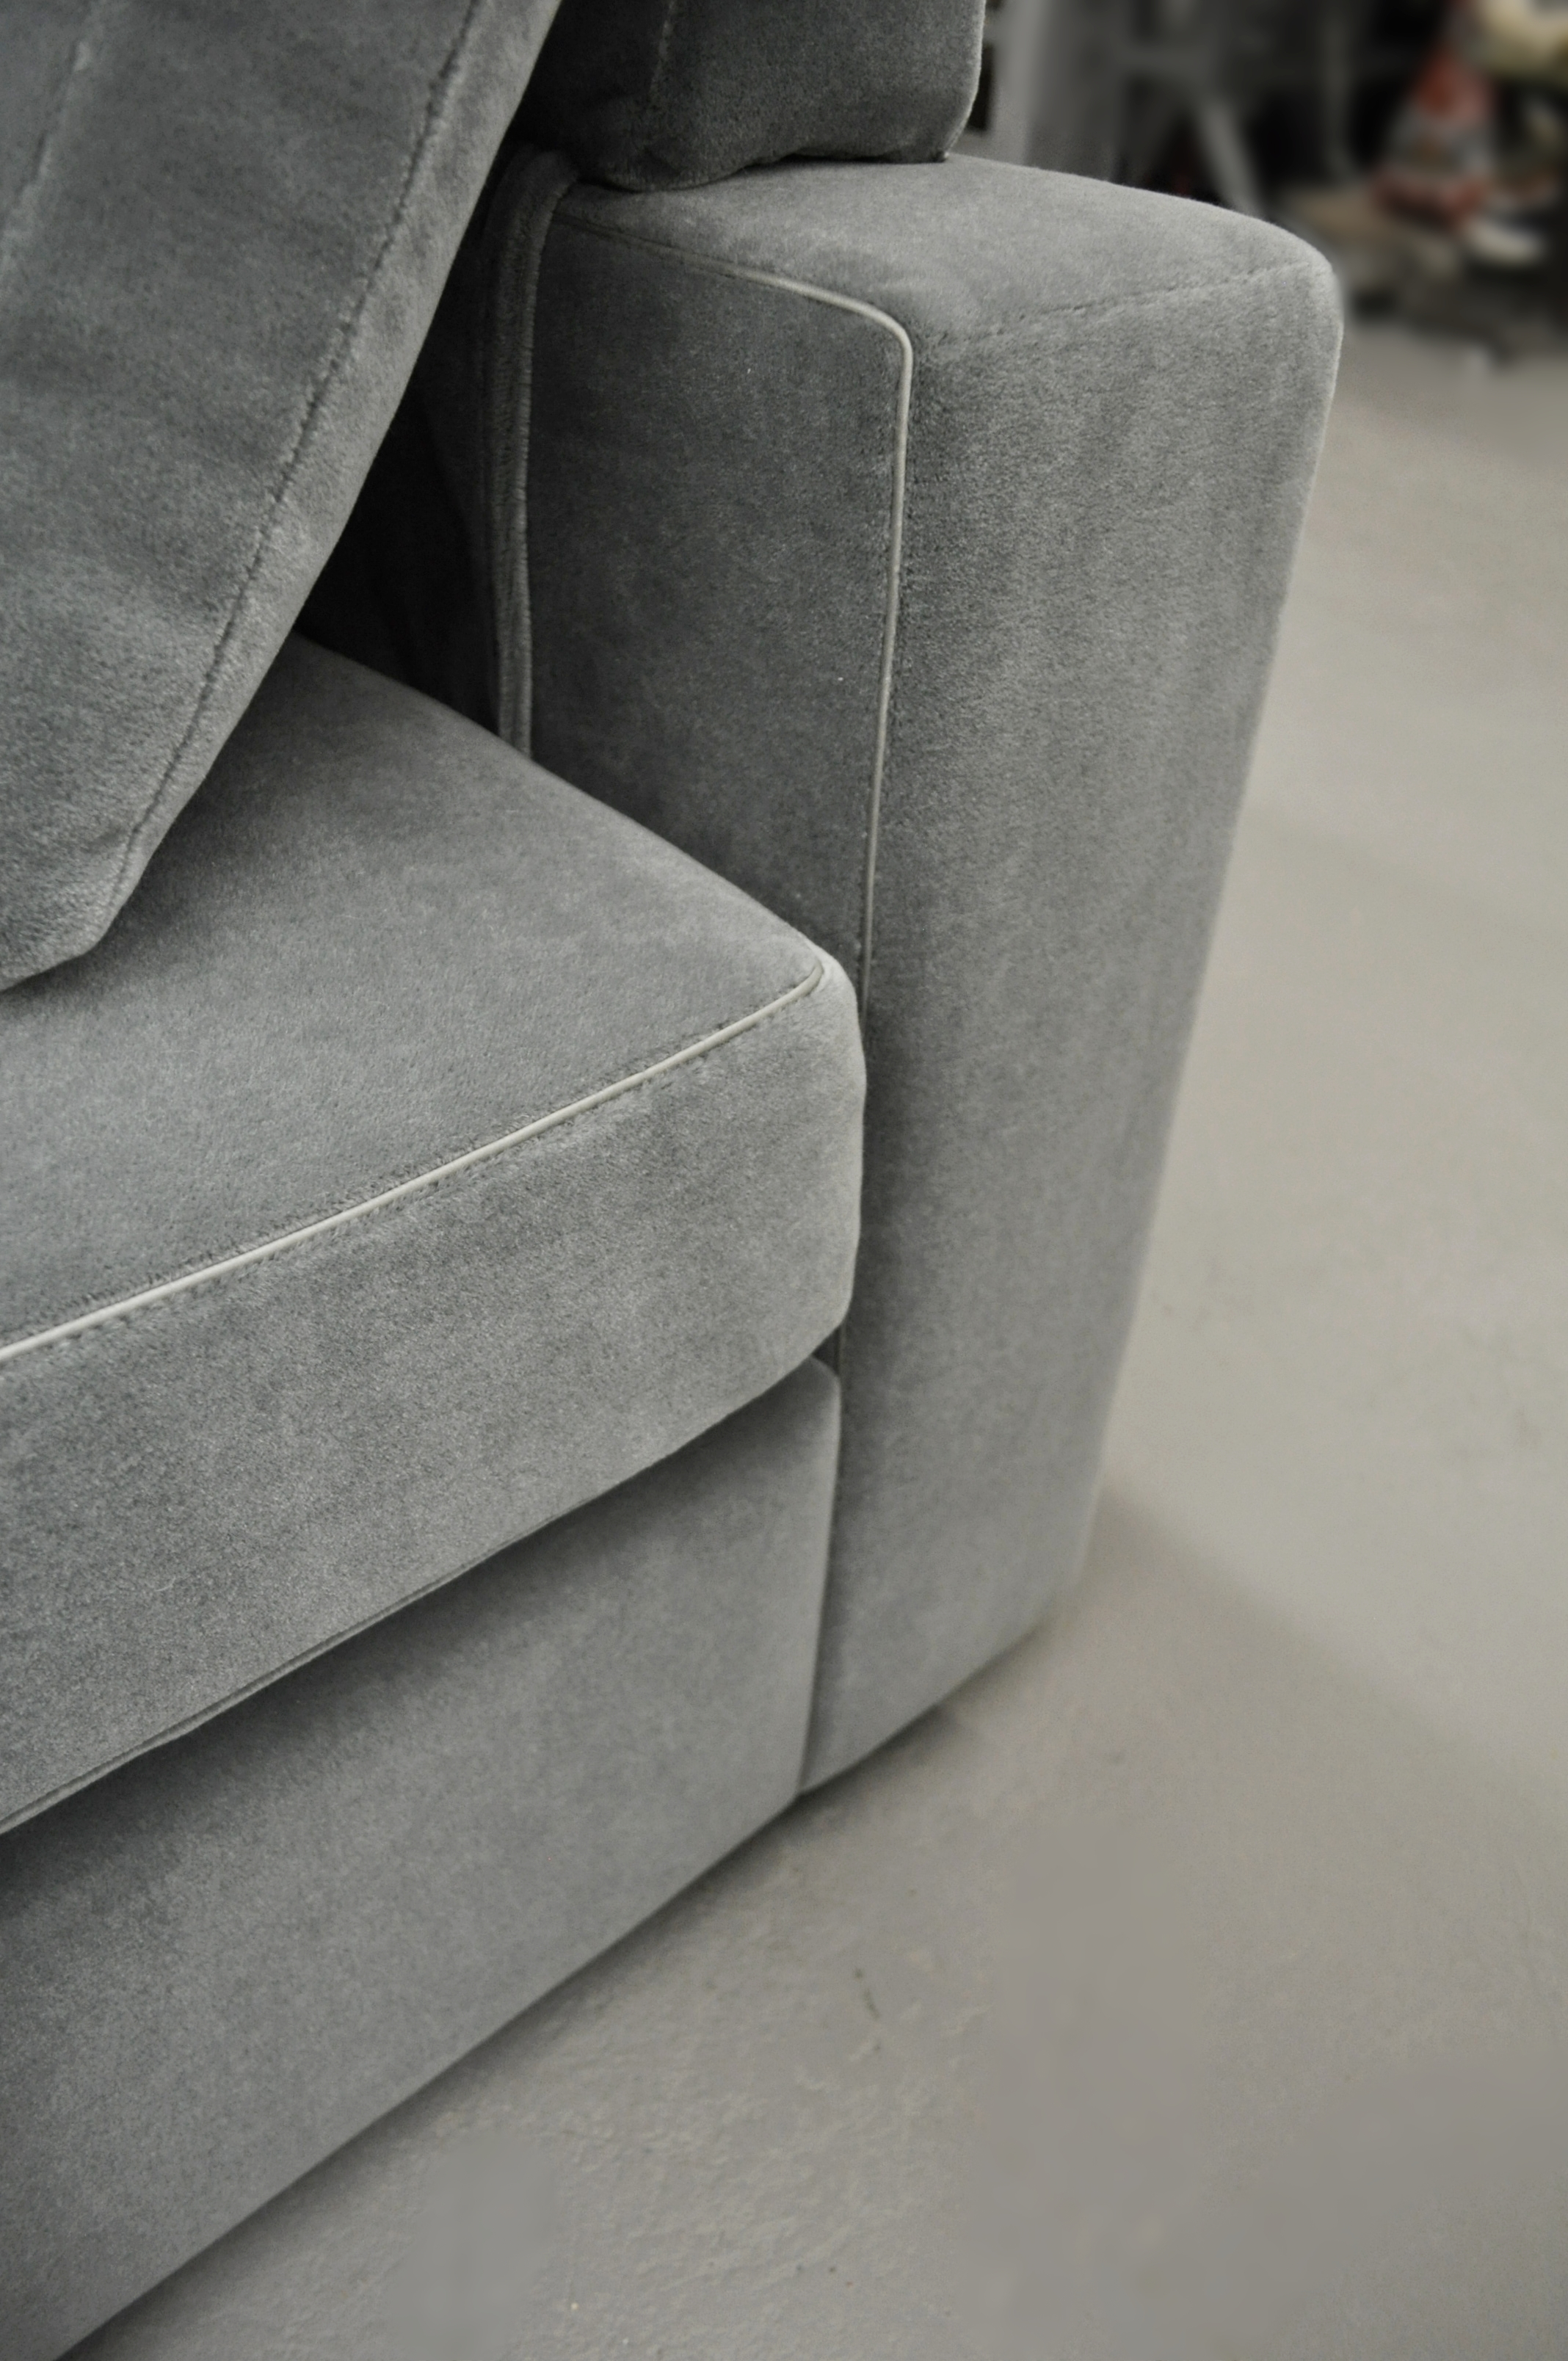 Detail shot of Livable Luxury sofa designed by Zacharko Yustin Architects. Mohair fabric with silk piping trim.